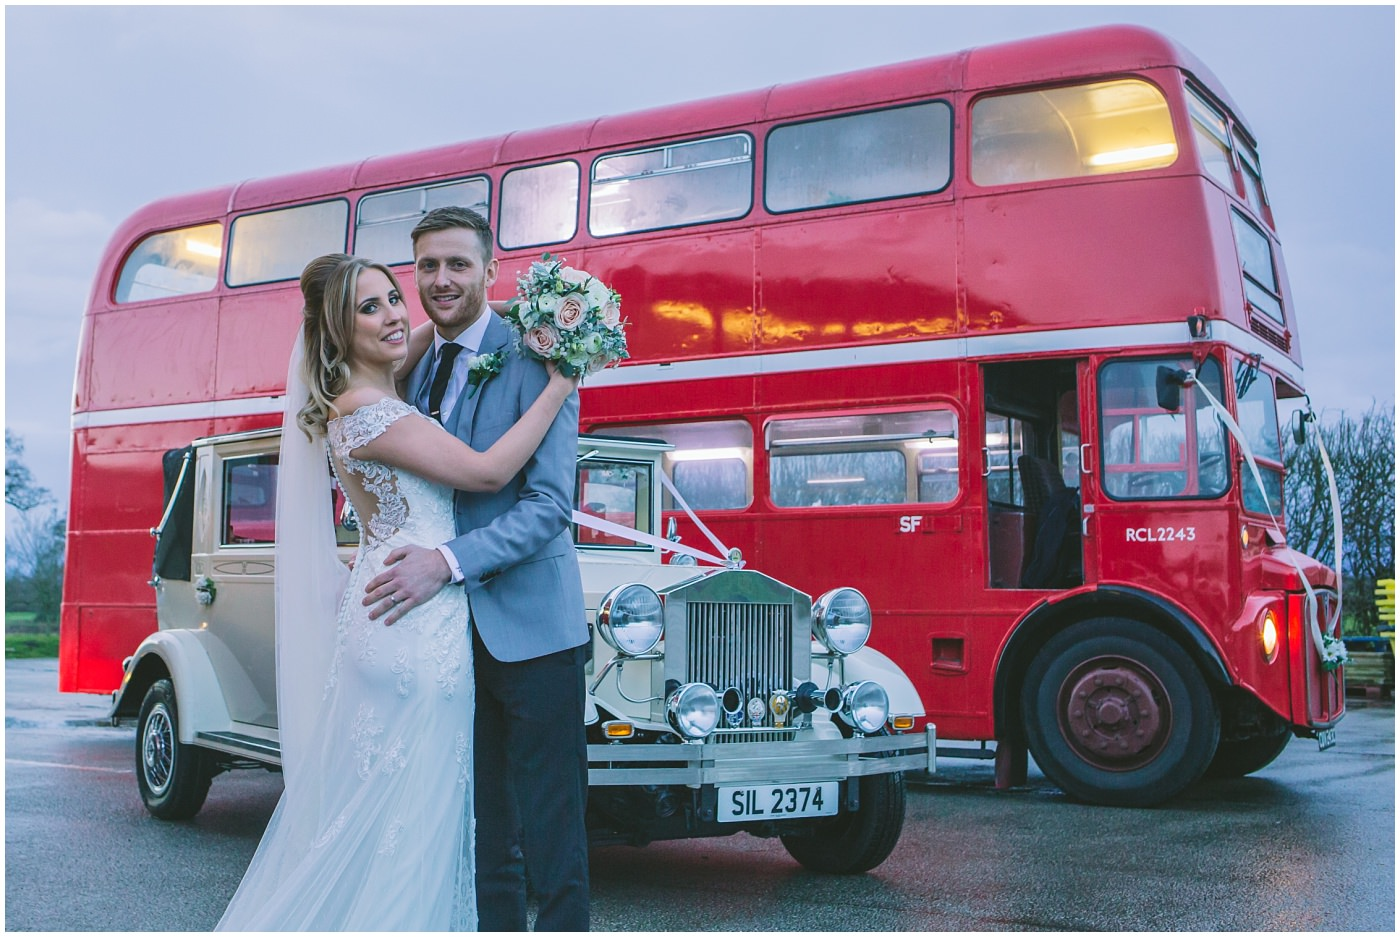 Bride and Groom pose in front of vintage wedding transport